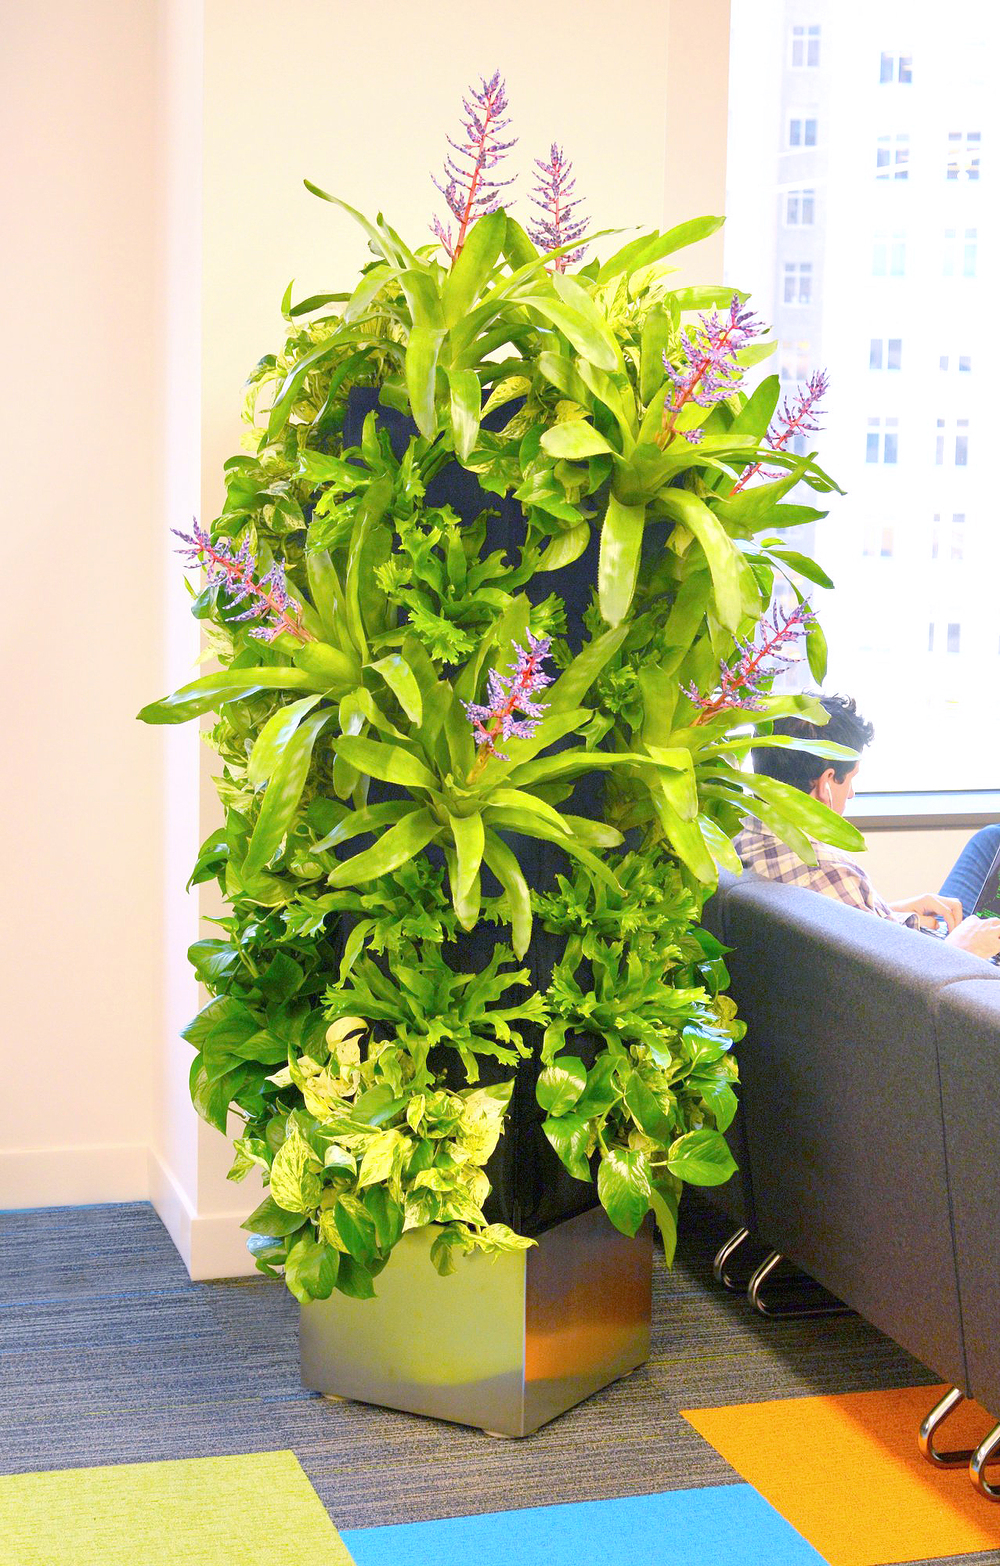 Florafelt Recirc-32 Plant Tower Vertical Garden Unit